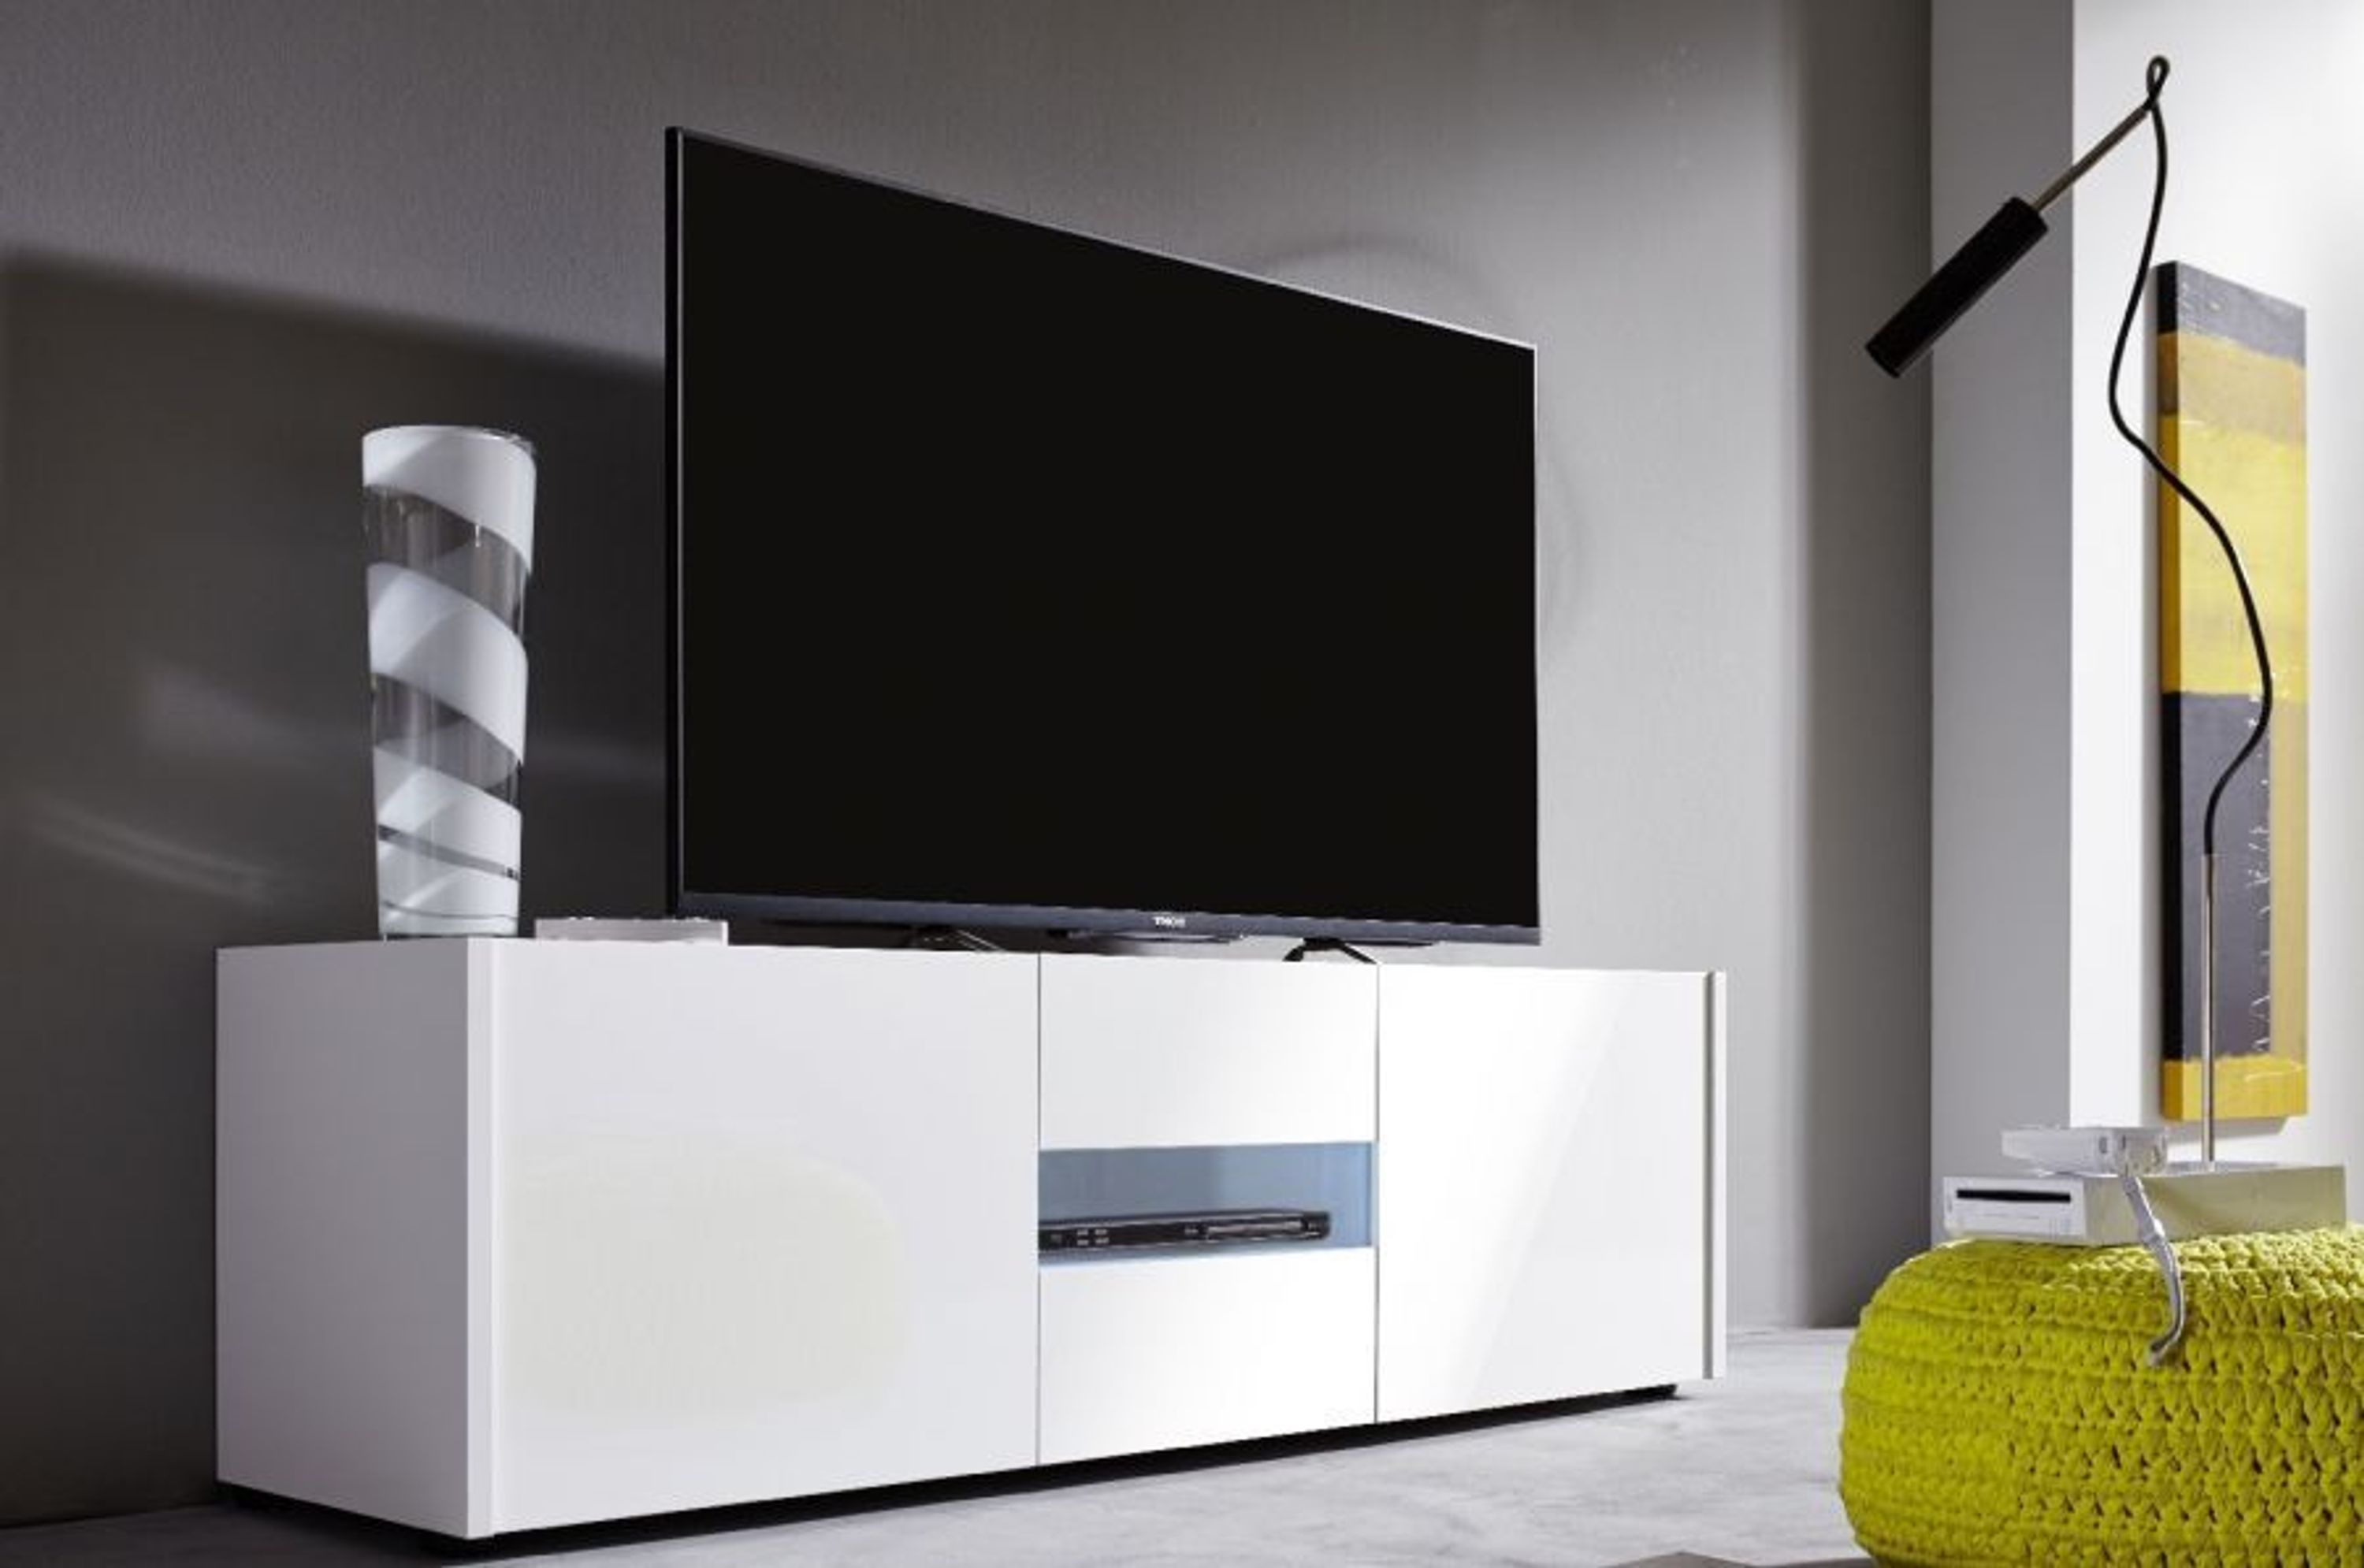 lowboard tv unterteil imola wei echt hochglanz lackiert 150 cm kaufen bei. Black Bedroom Furniture Sets. Home Design Ideas